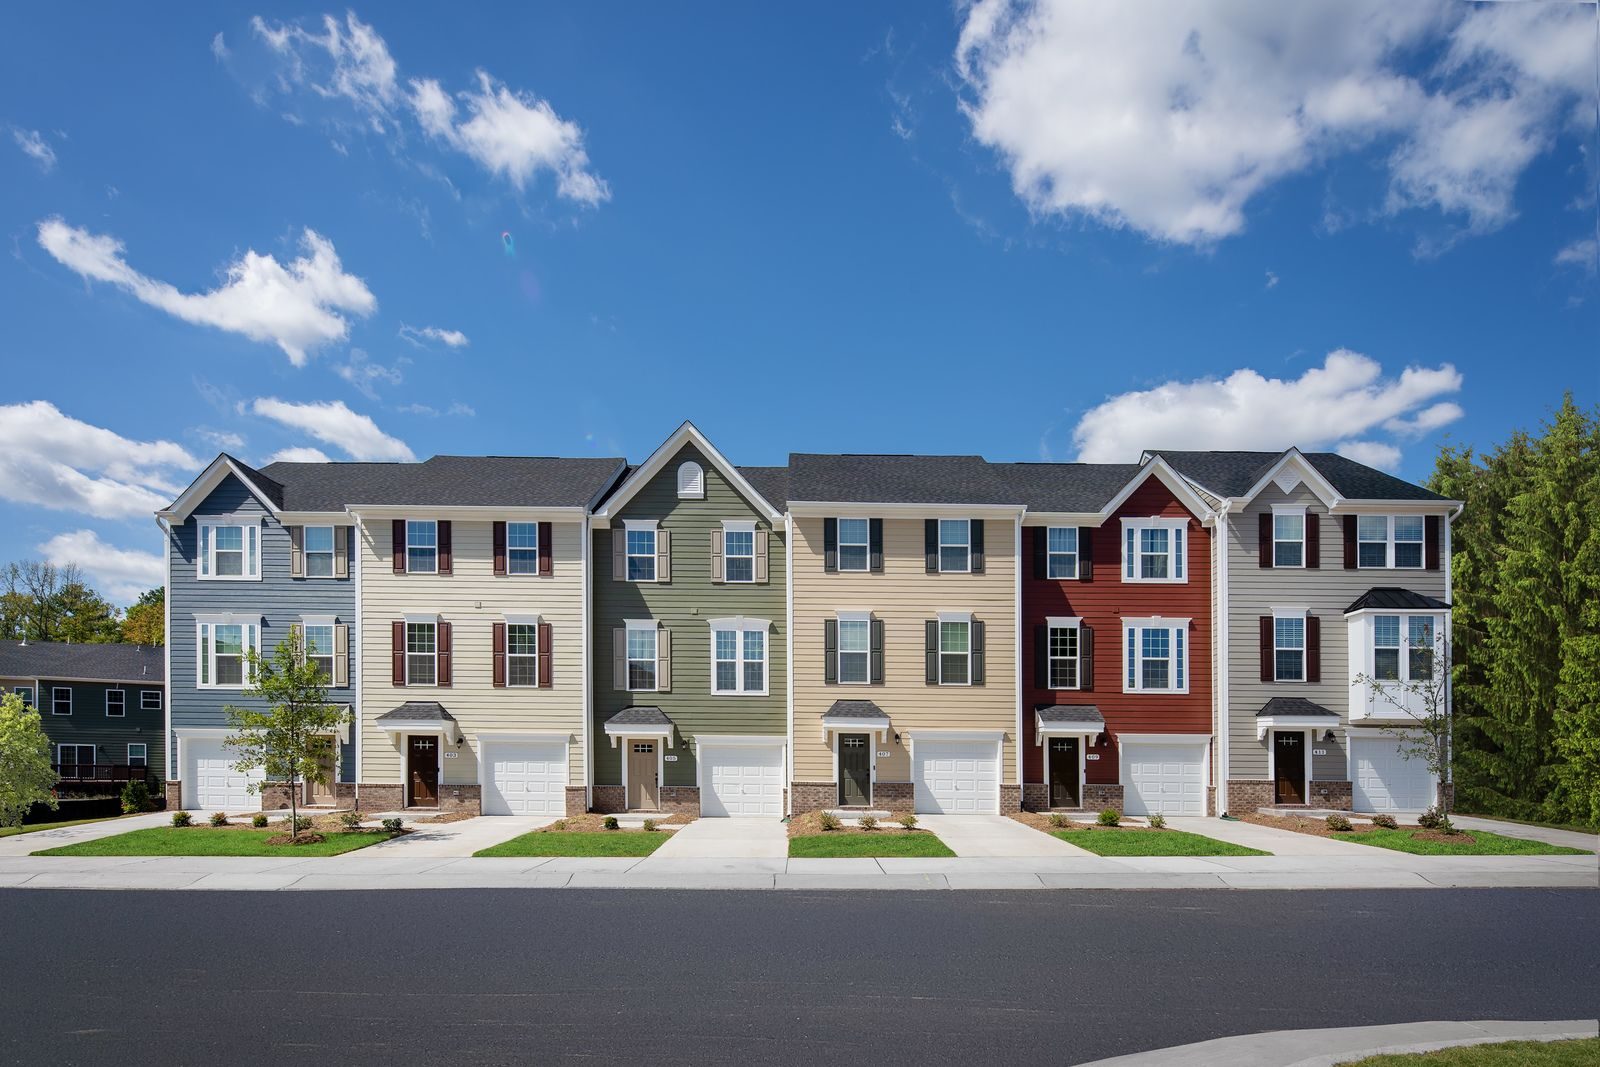 VILLAGE OAKS TOWNES: CHARLOTTESVILLE-AREA'S BEST-PRICED TOWNHOMES WITH GARAGES FROM THE $220S!:We're already half way sold out since opening in September!Click here to schedule your visit & learn how you can own for less than $1350/month, PLUS receive $2,000 toward closing through 10/31.